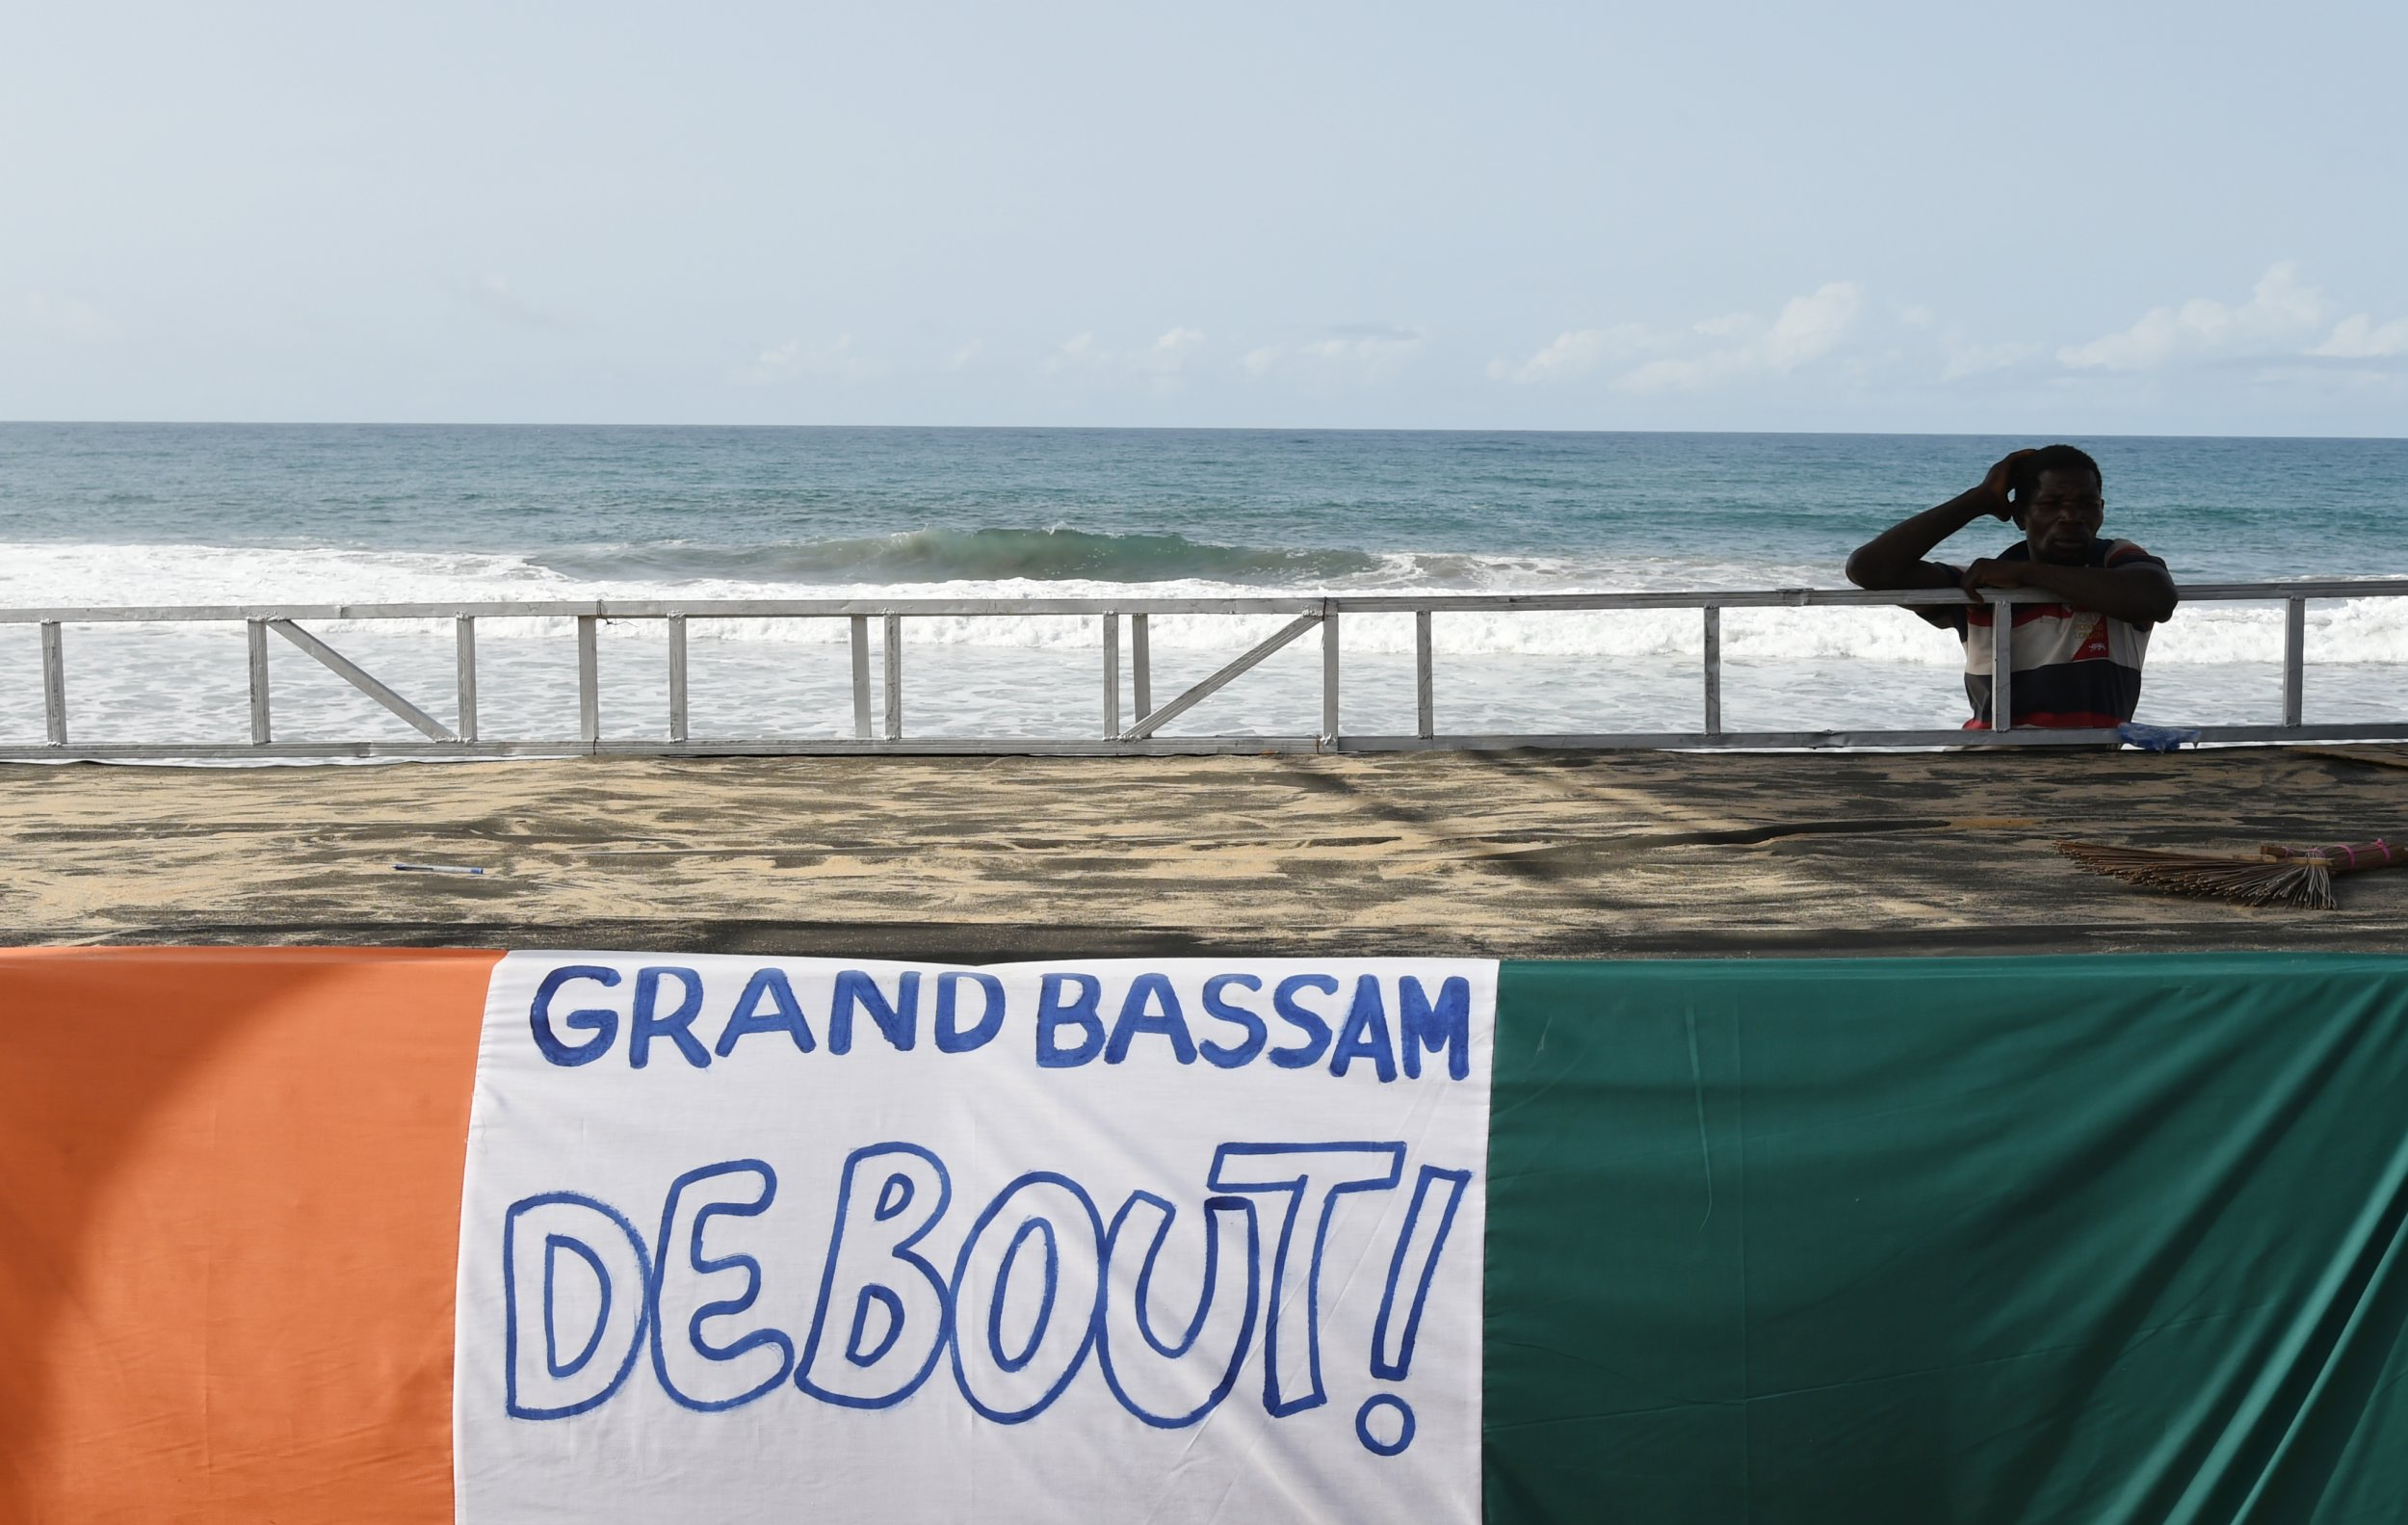 An Ivorian man stands near a Grand Bassam banner after an Al-Qaeda attack.